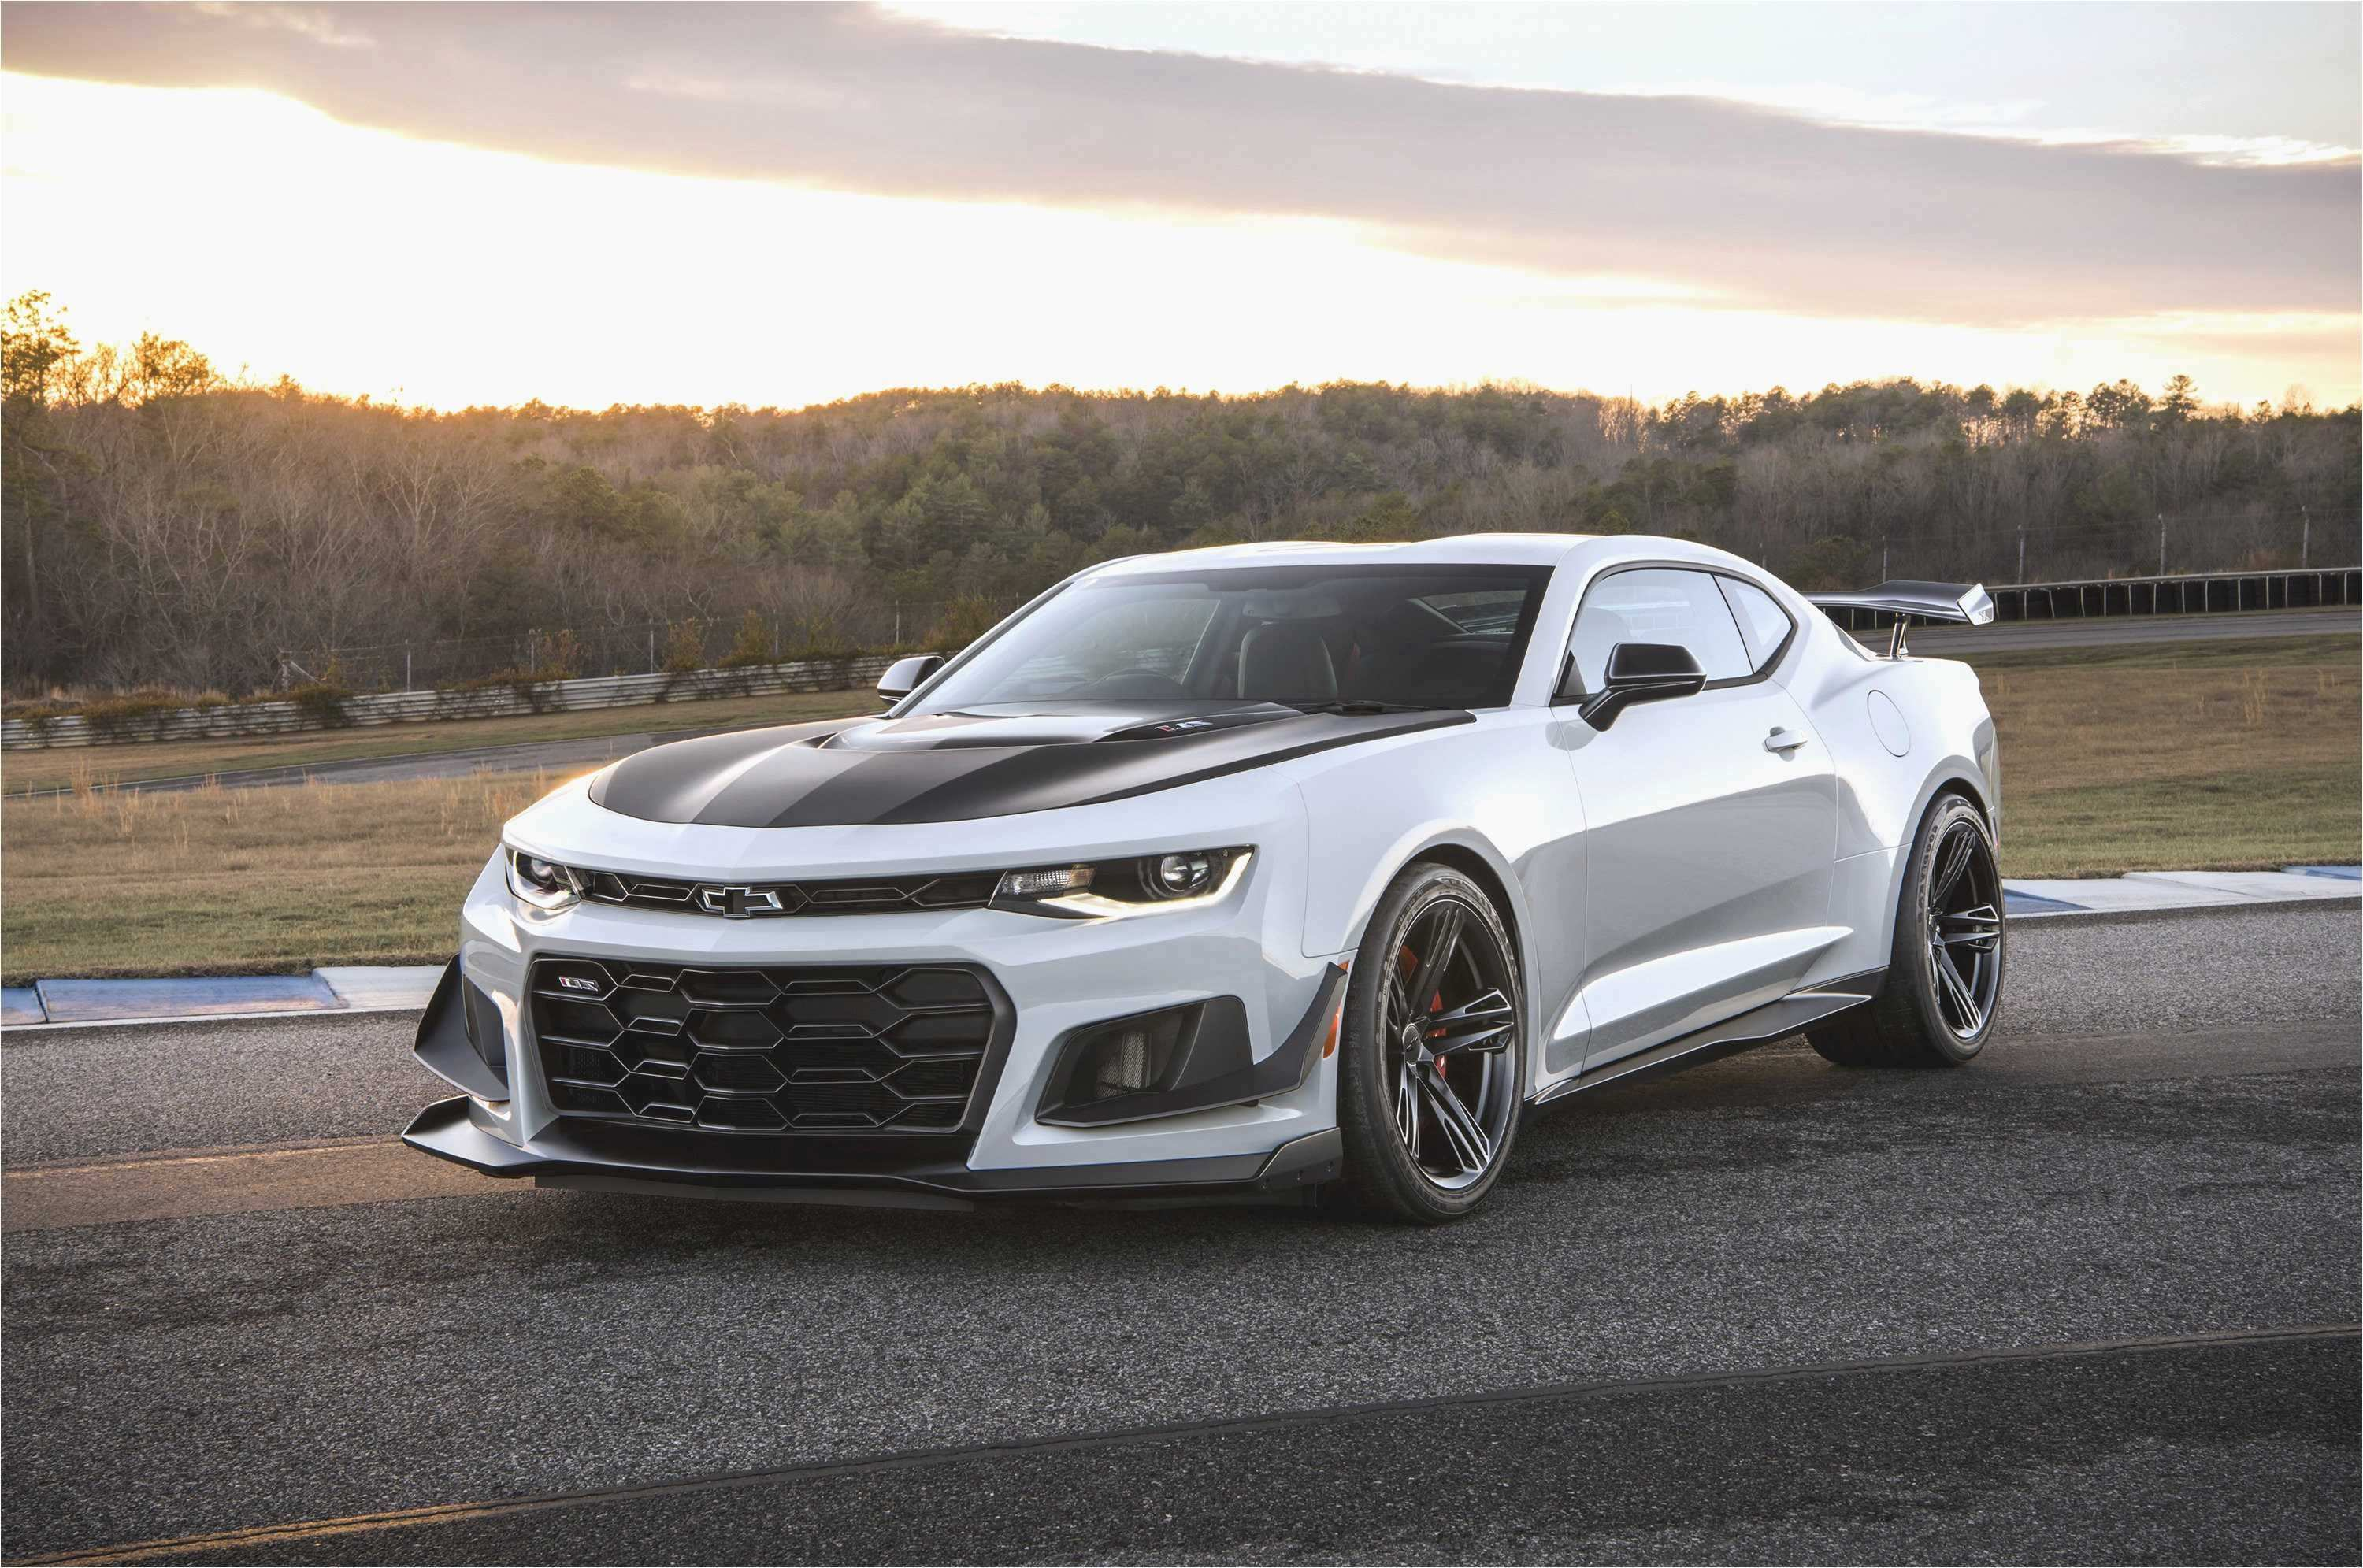 35 A 2020 Camaro Z28 Horsepower Spy Shoot